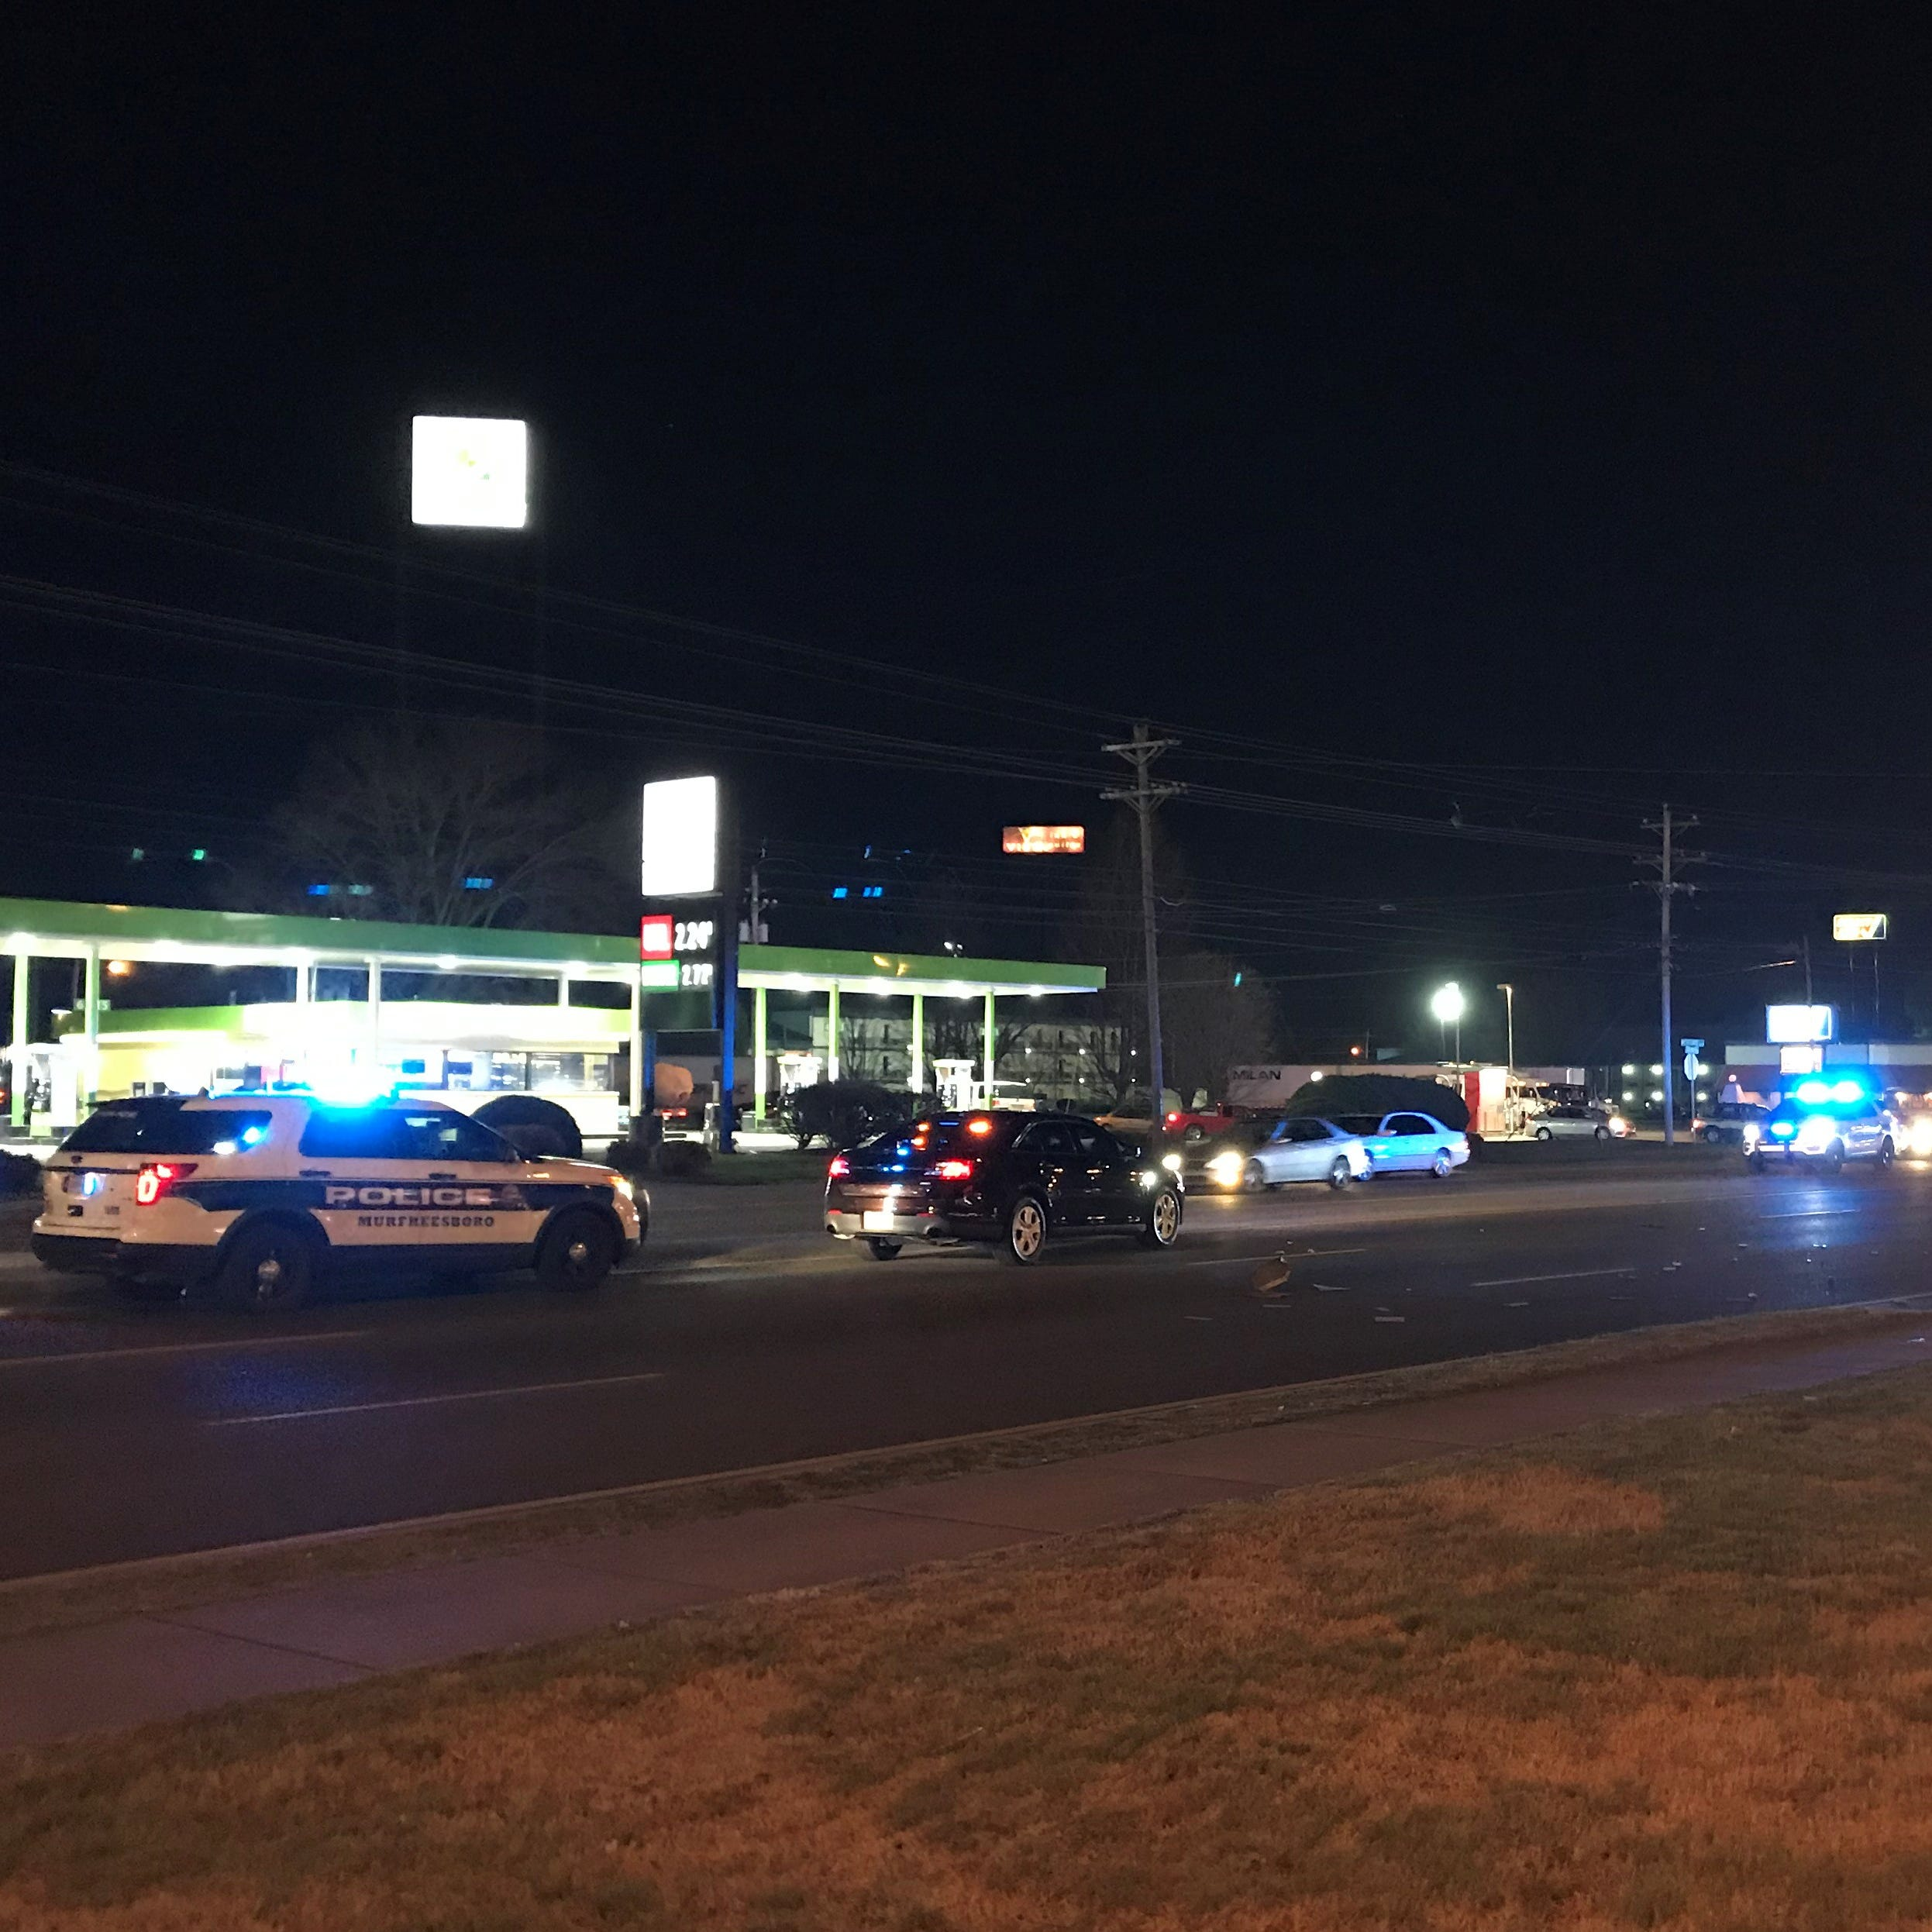 Police: Pedestrian dead after being hit by car on South Church Street